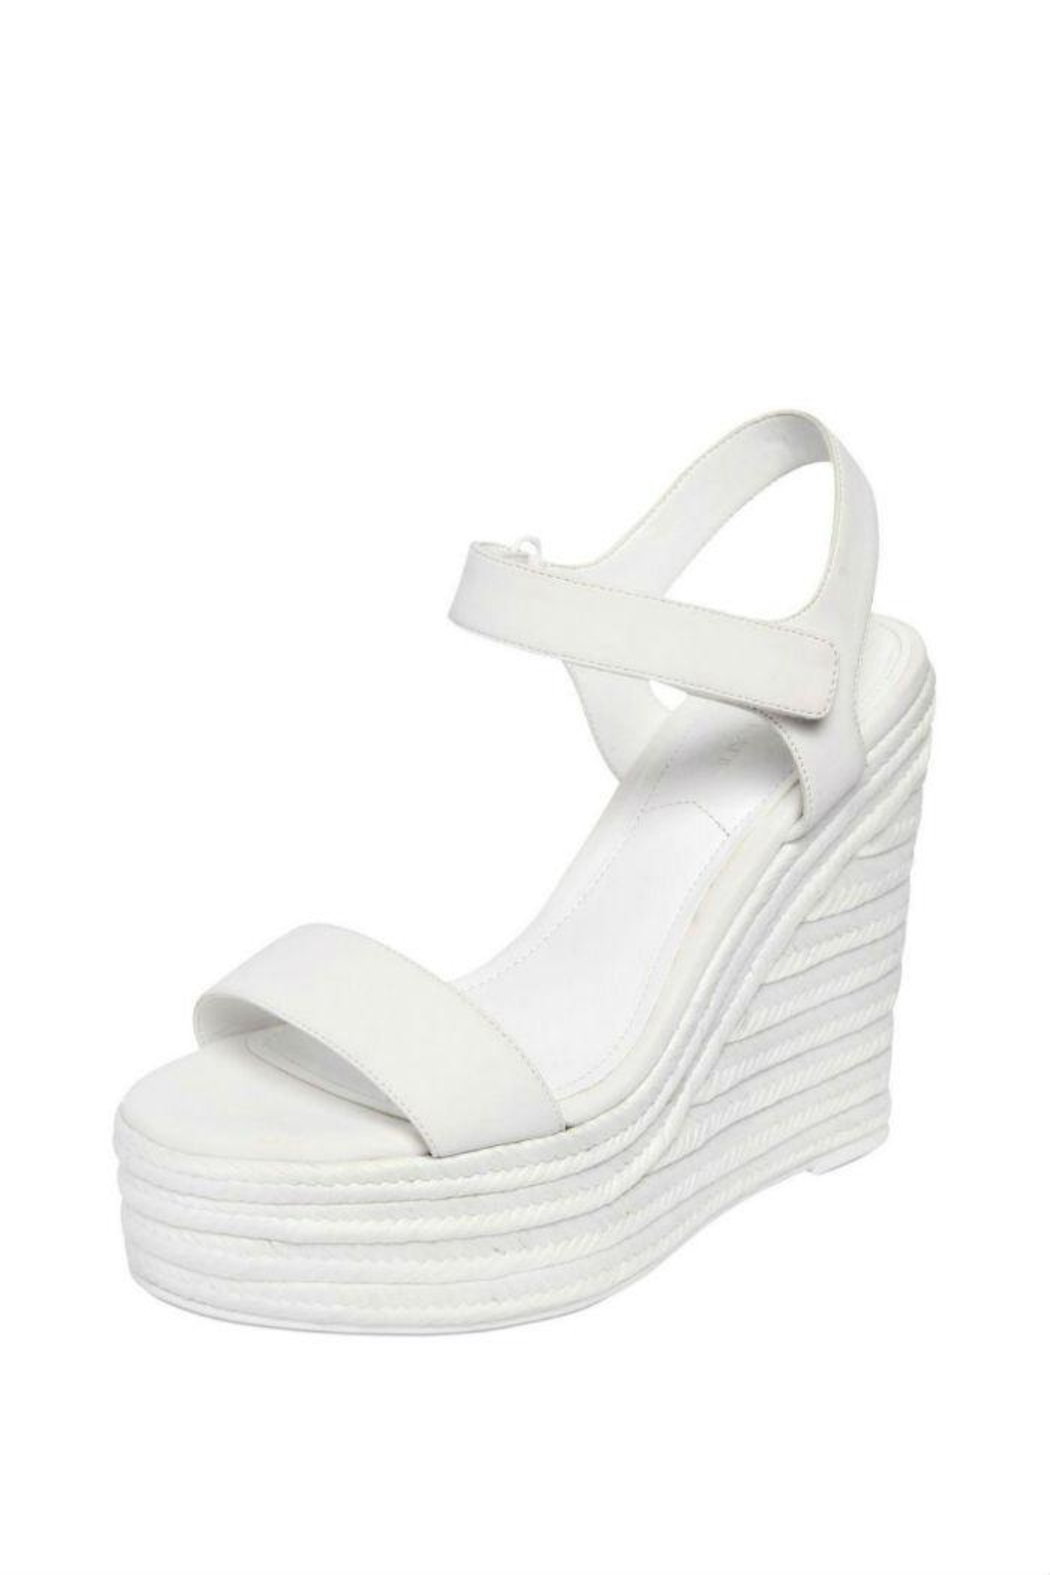 Kendall + Kylie Grand Wedge Sandal - Front Cropped Image